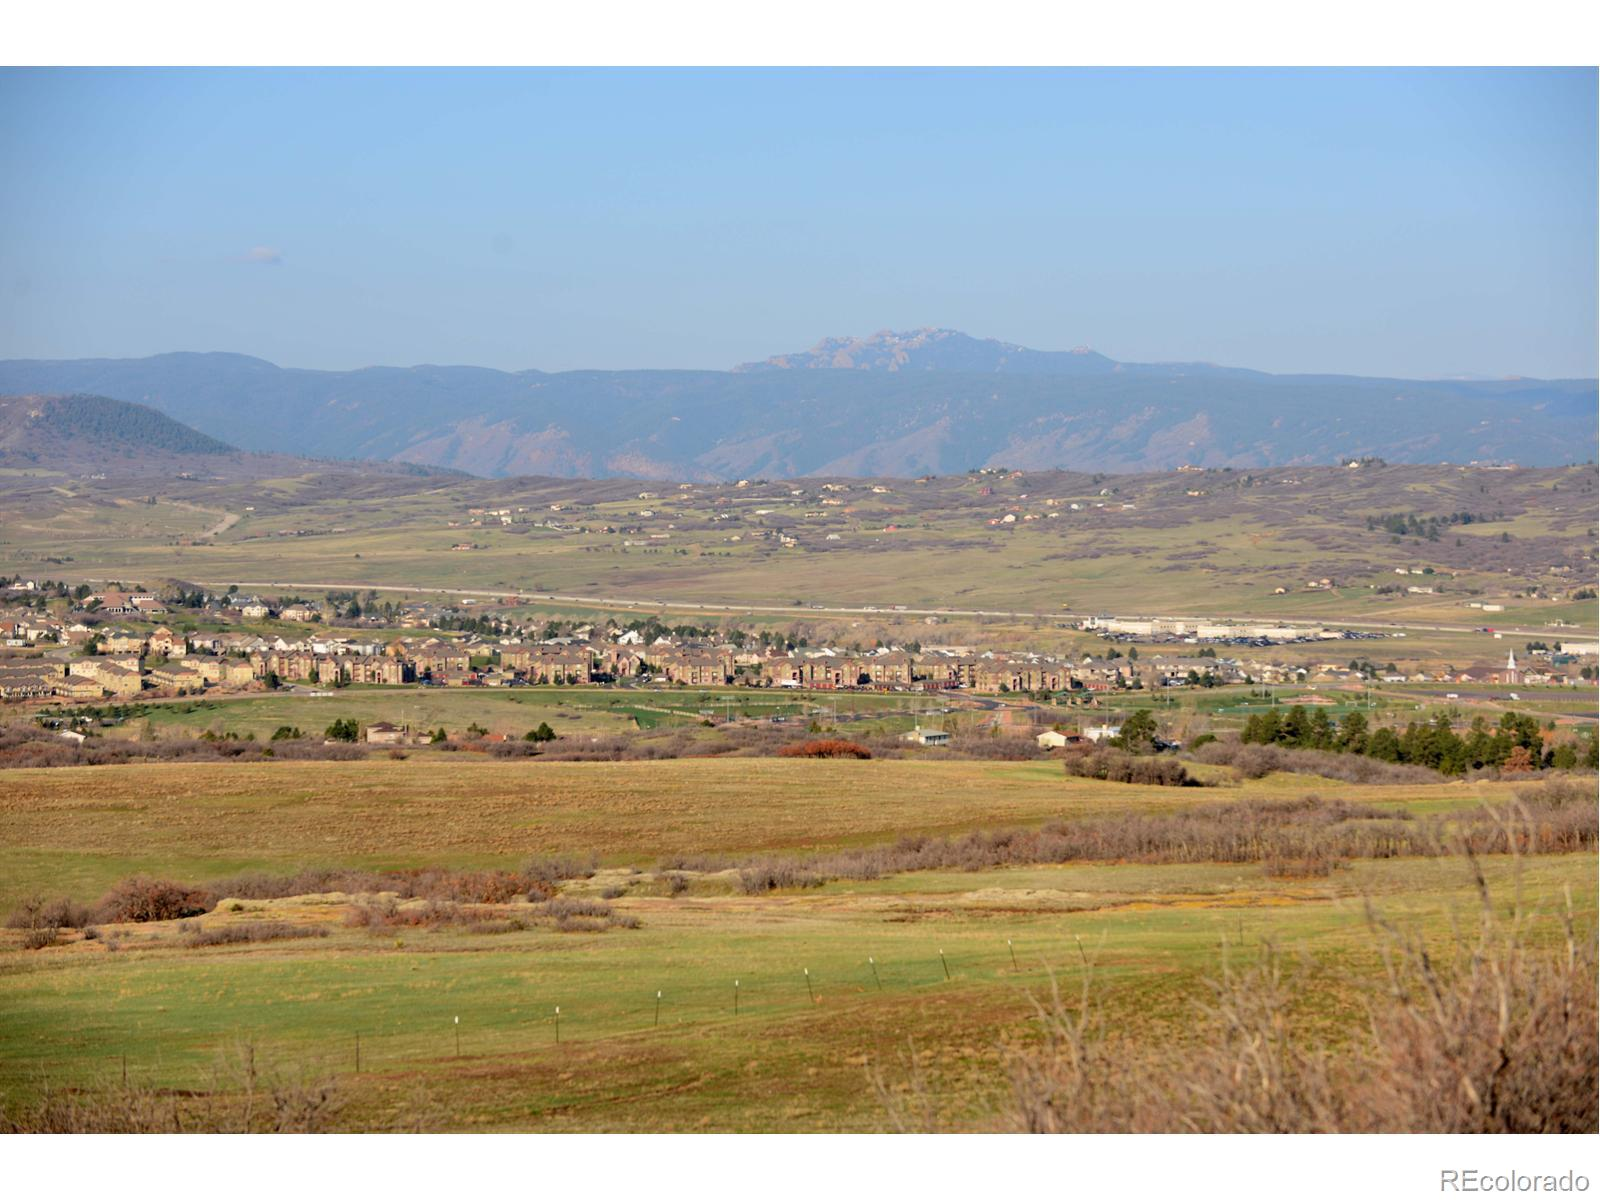 GORGEOUS LAND WITH TERRIFIC VIEWS, ZONING IN PLACE FOR 1,035 UNITS, KING SOOPERS IS JUST ACROSS THE ROAD, APROX. 176 ACRES - ONE OF THE LAST GOOD DEVELOPABLE ACREAGES IN CASTLE ROCK!